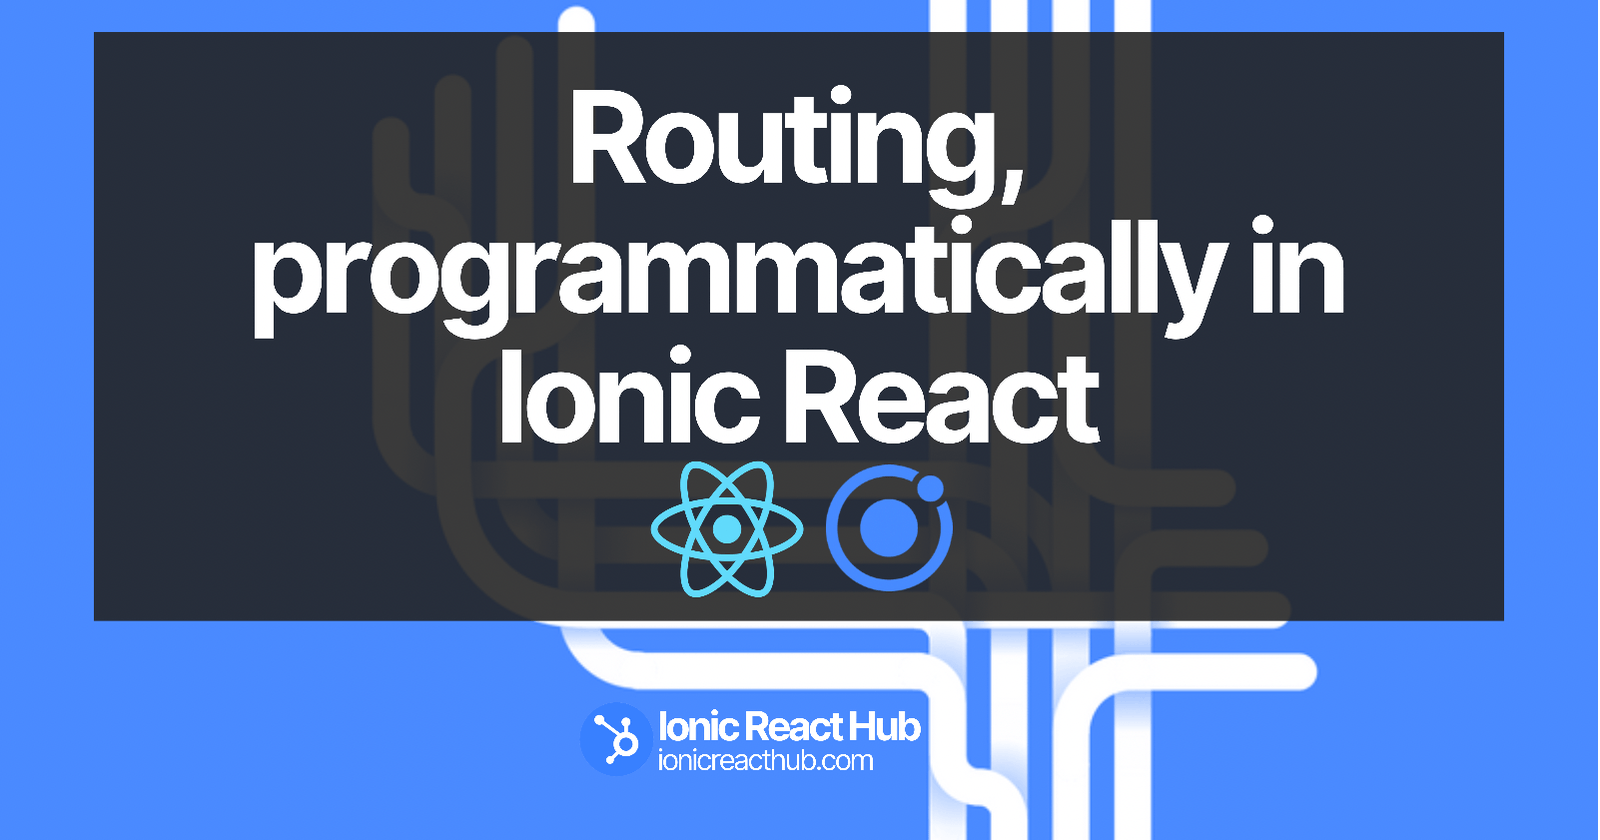 Routing, programmatically in Ionic React